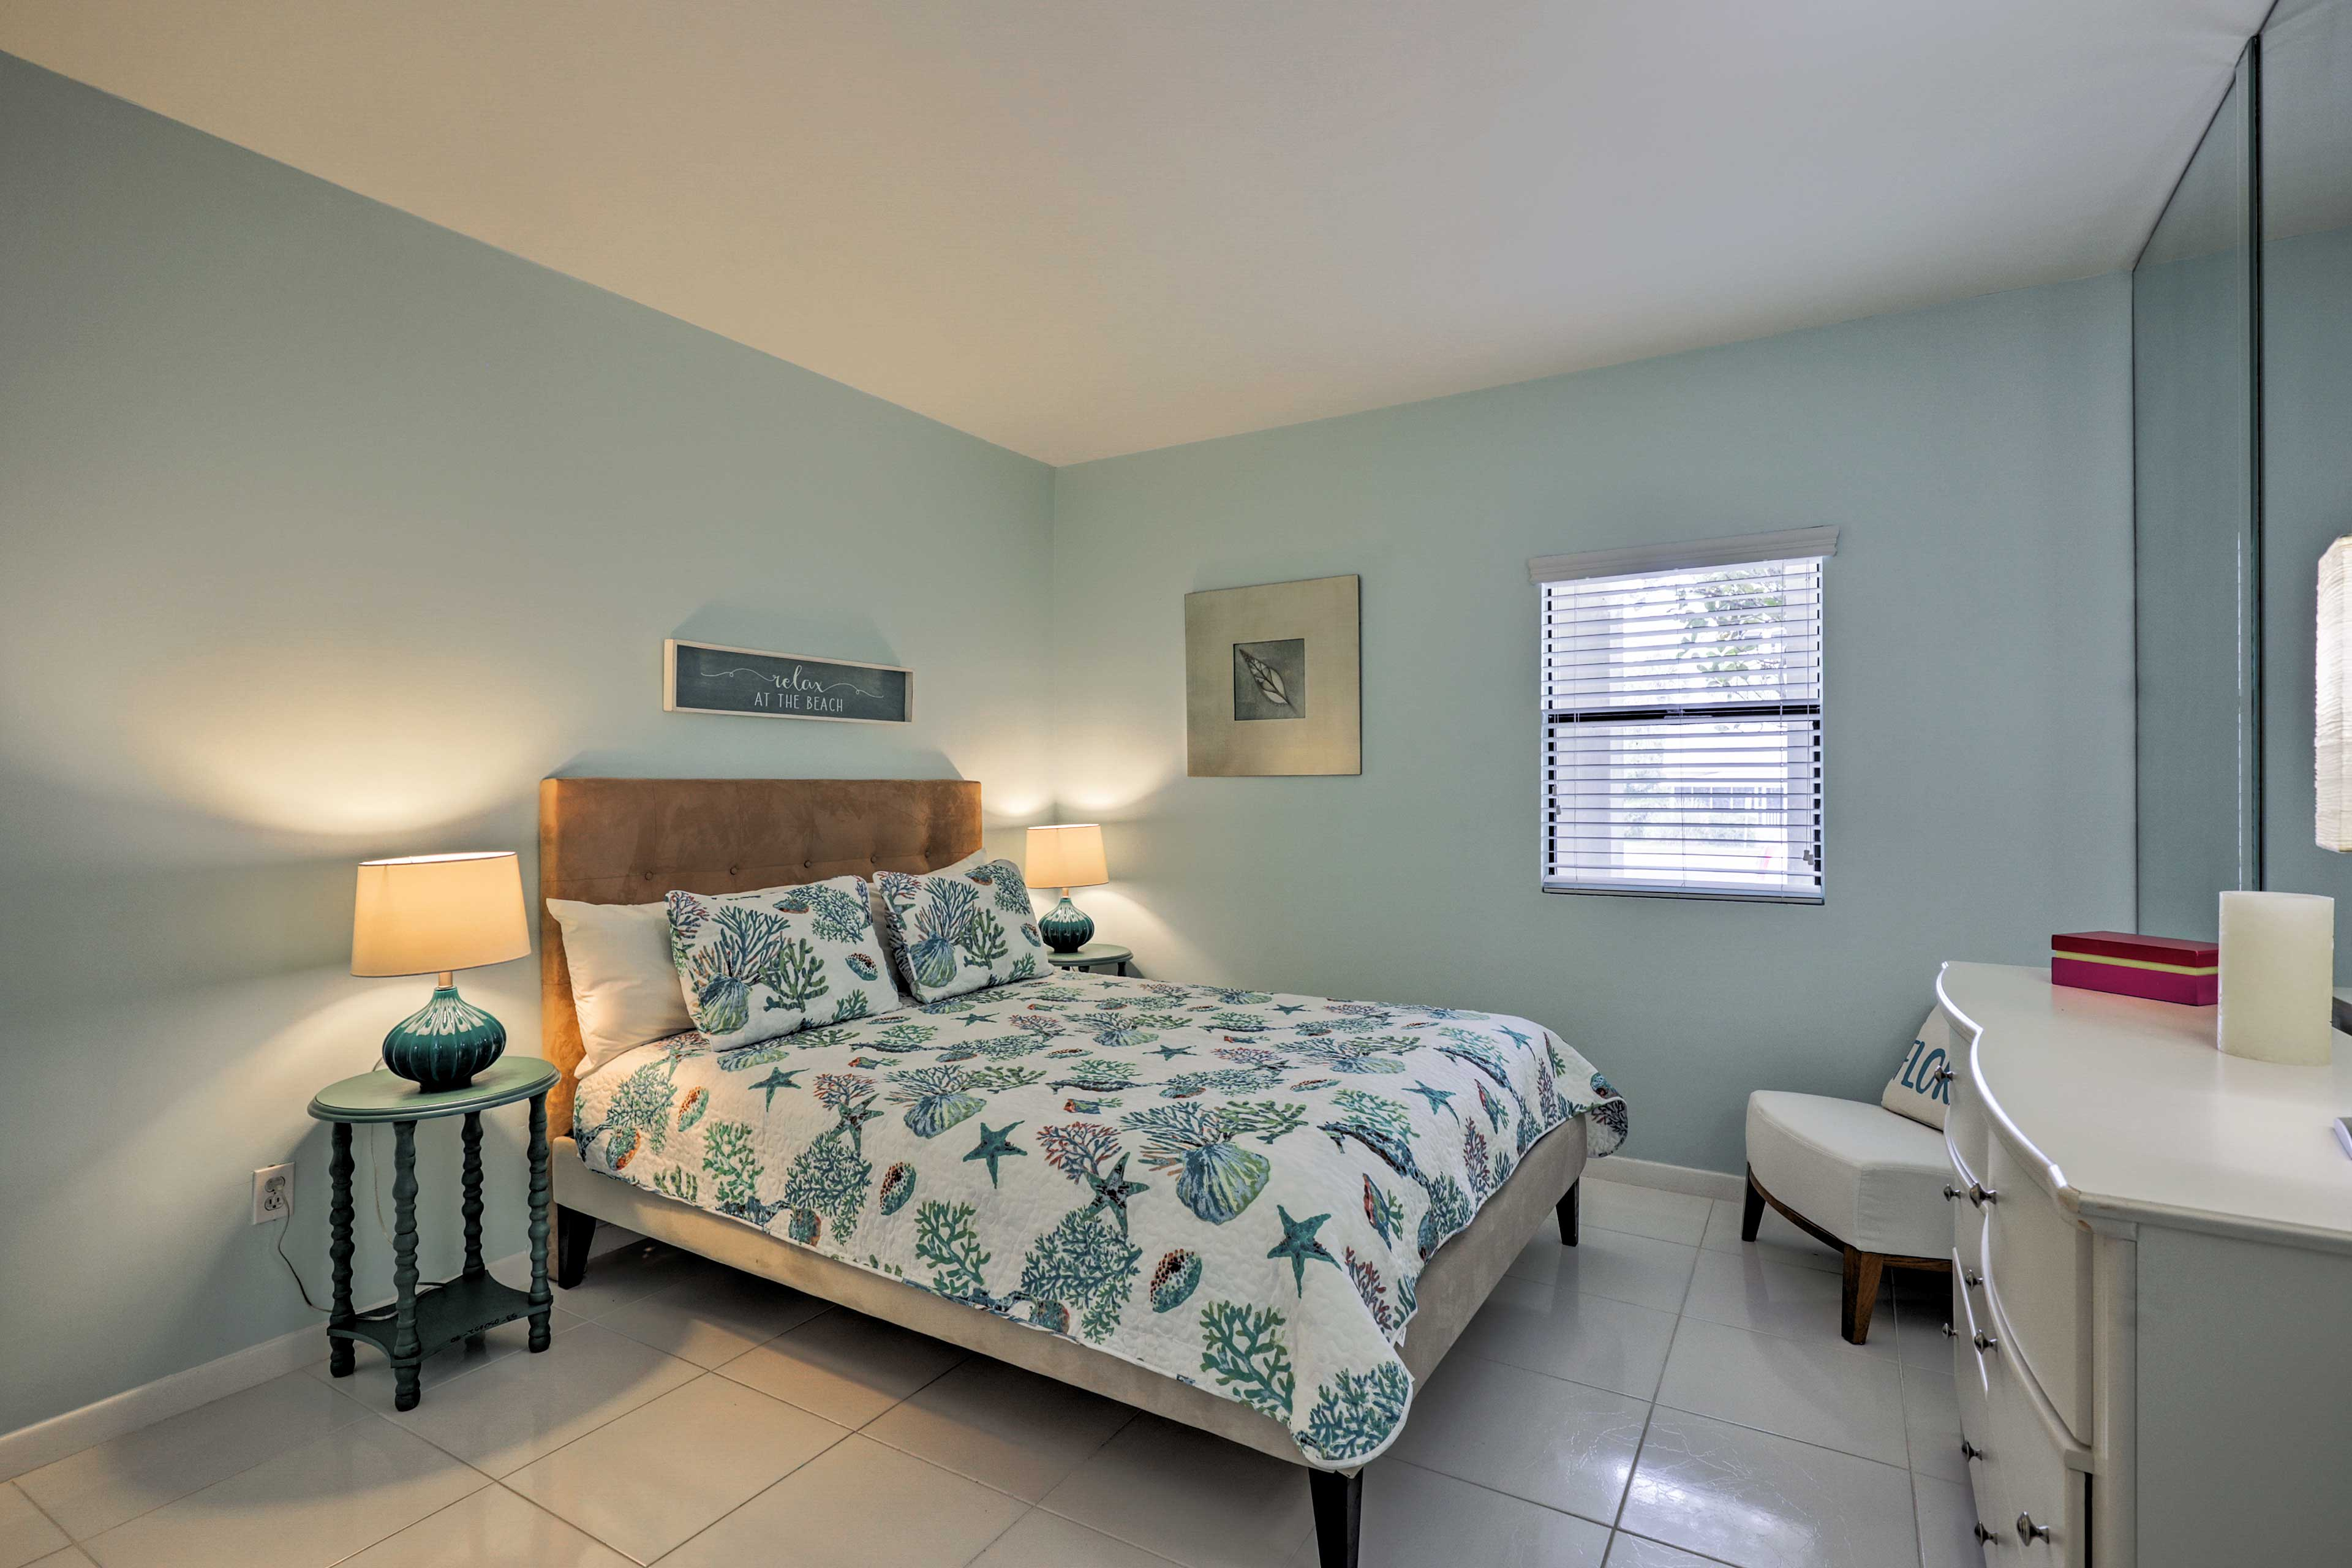 The bedroom hosts a plush queen bed.